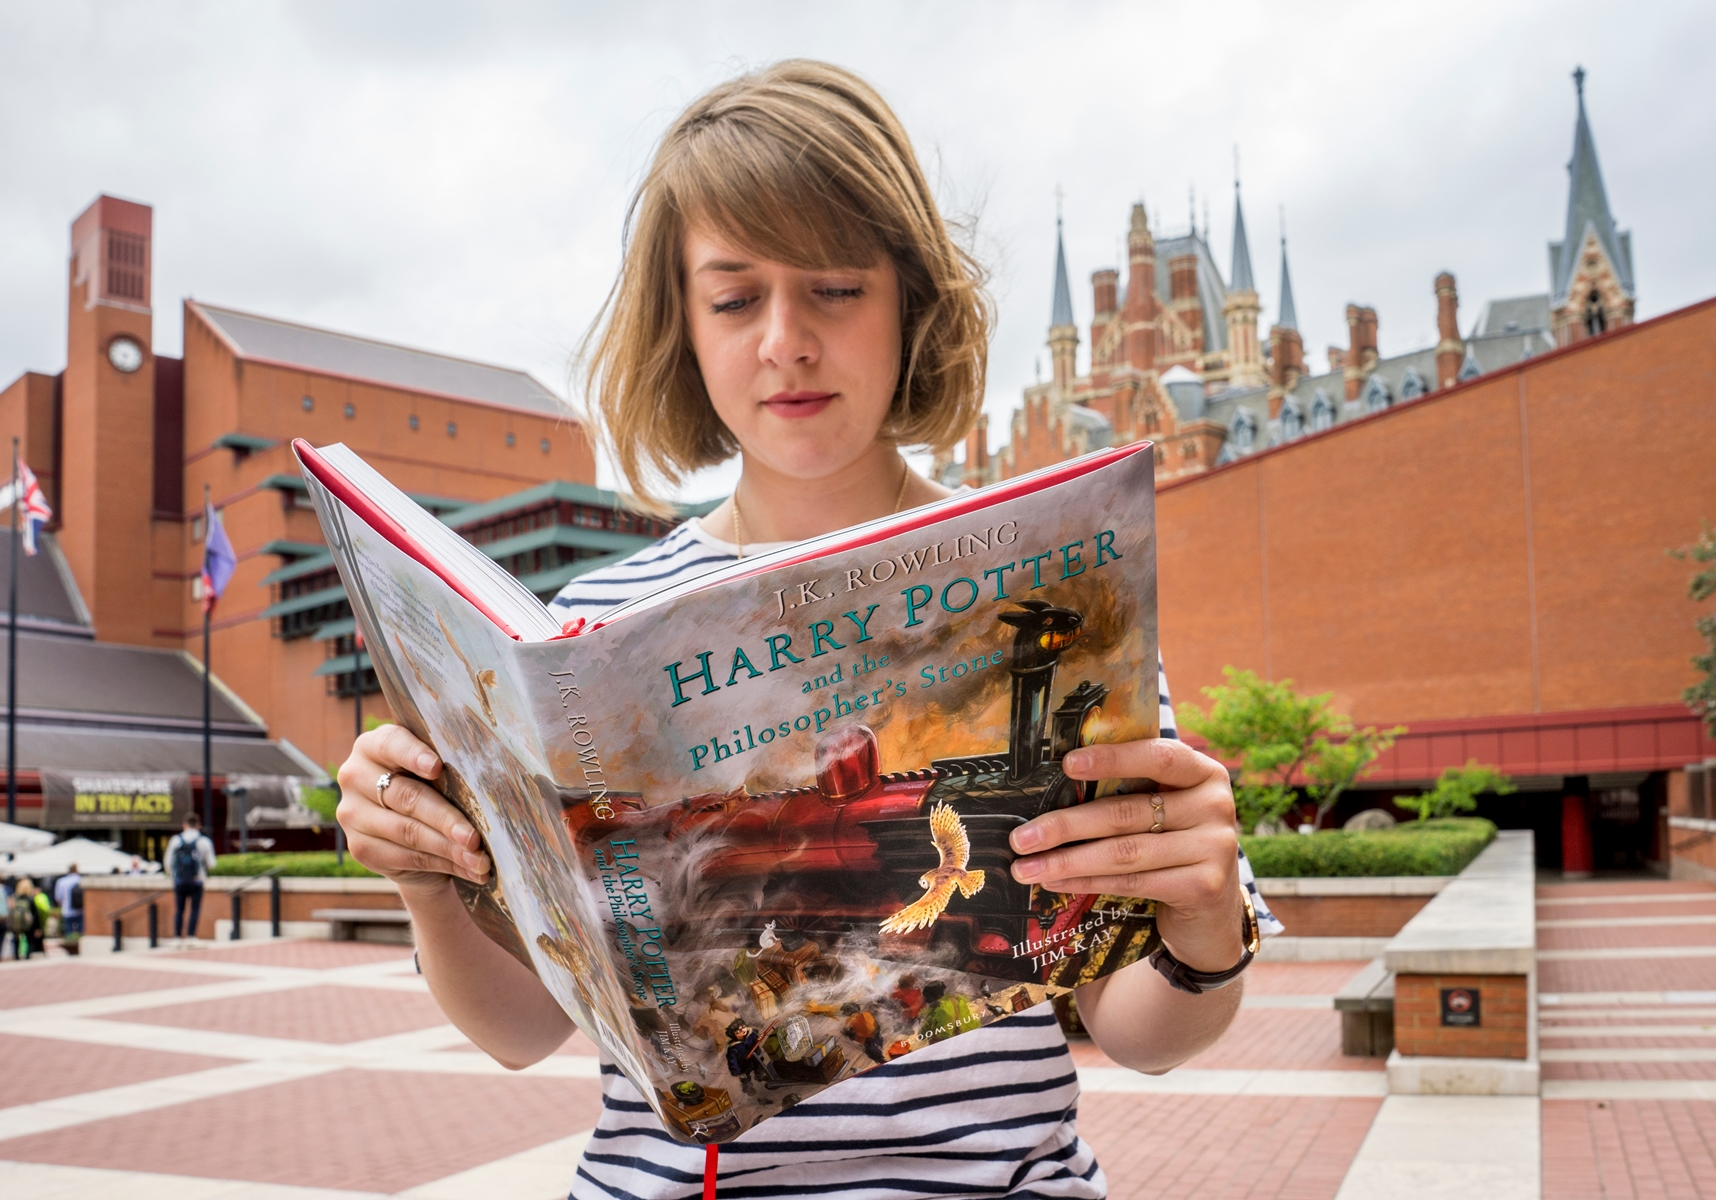 British Library employee reading Harry Potter and the Philosopher's Stone